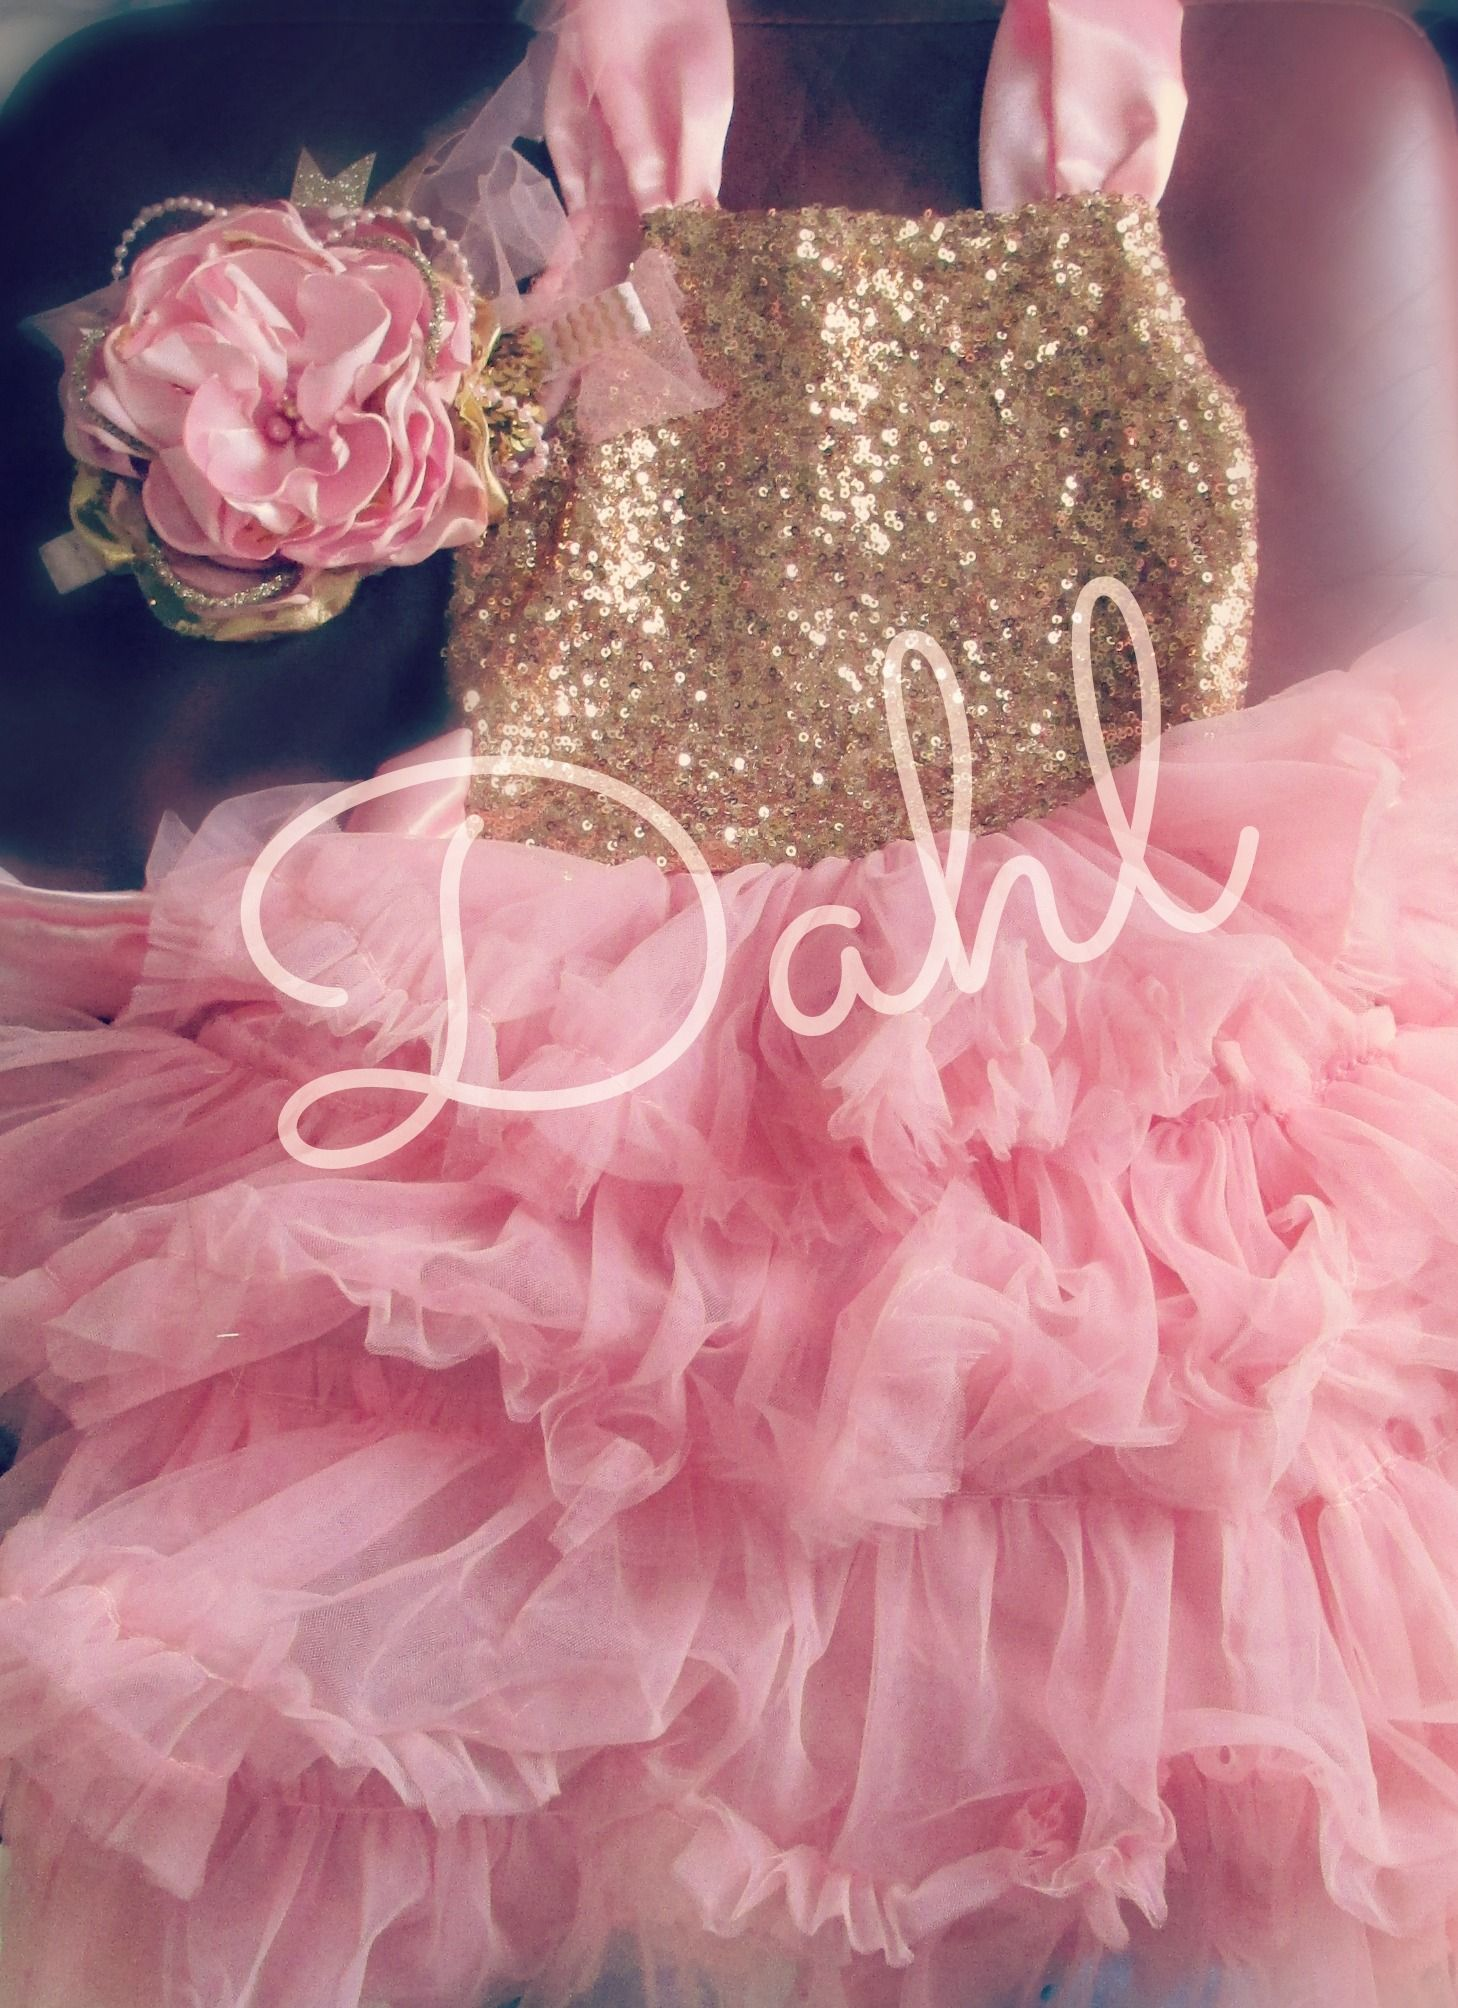 Baby girl pink sequin dress - Blush Gold Sequined Bow Tutu Dress Girls Big Sequin Bow Dress Pink And Gold Sequined Dress Baby Girl Sequined Big Bow